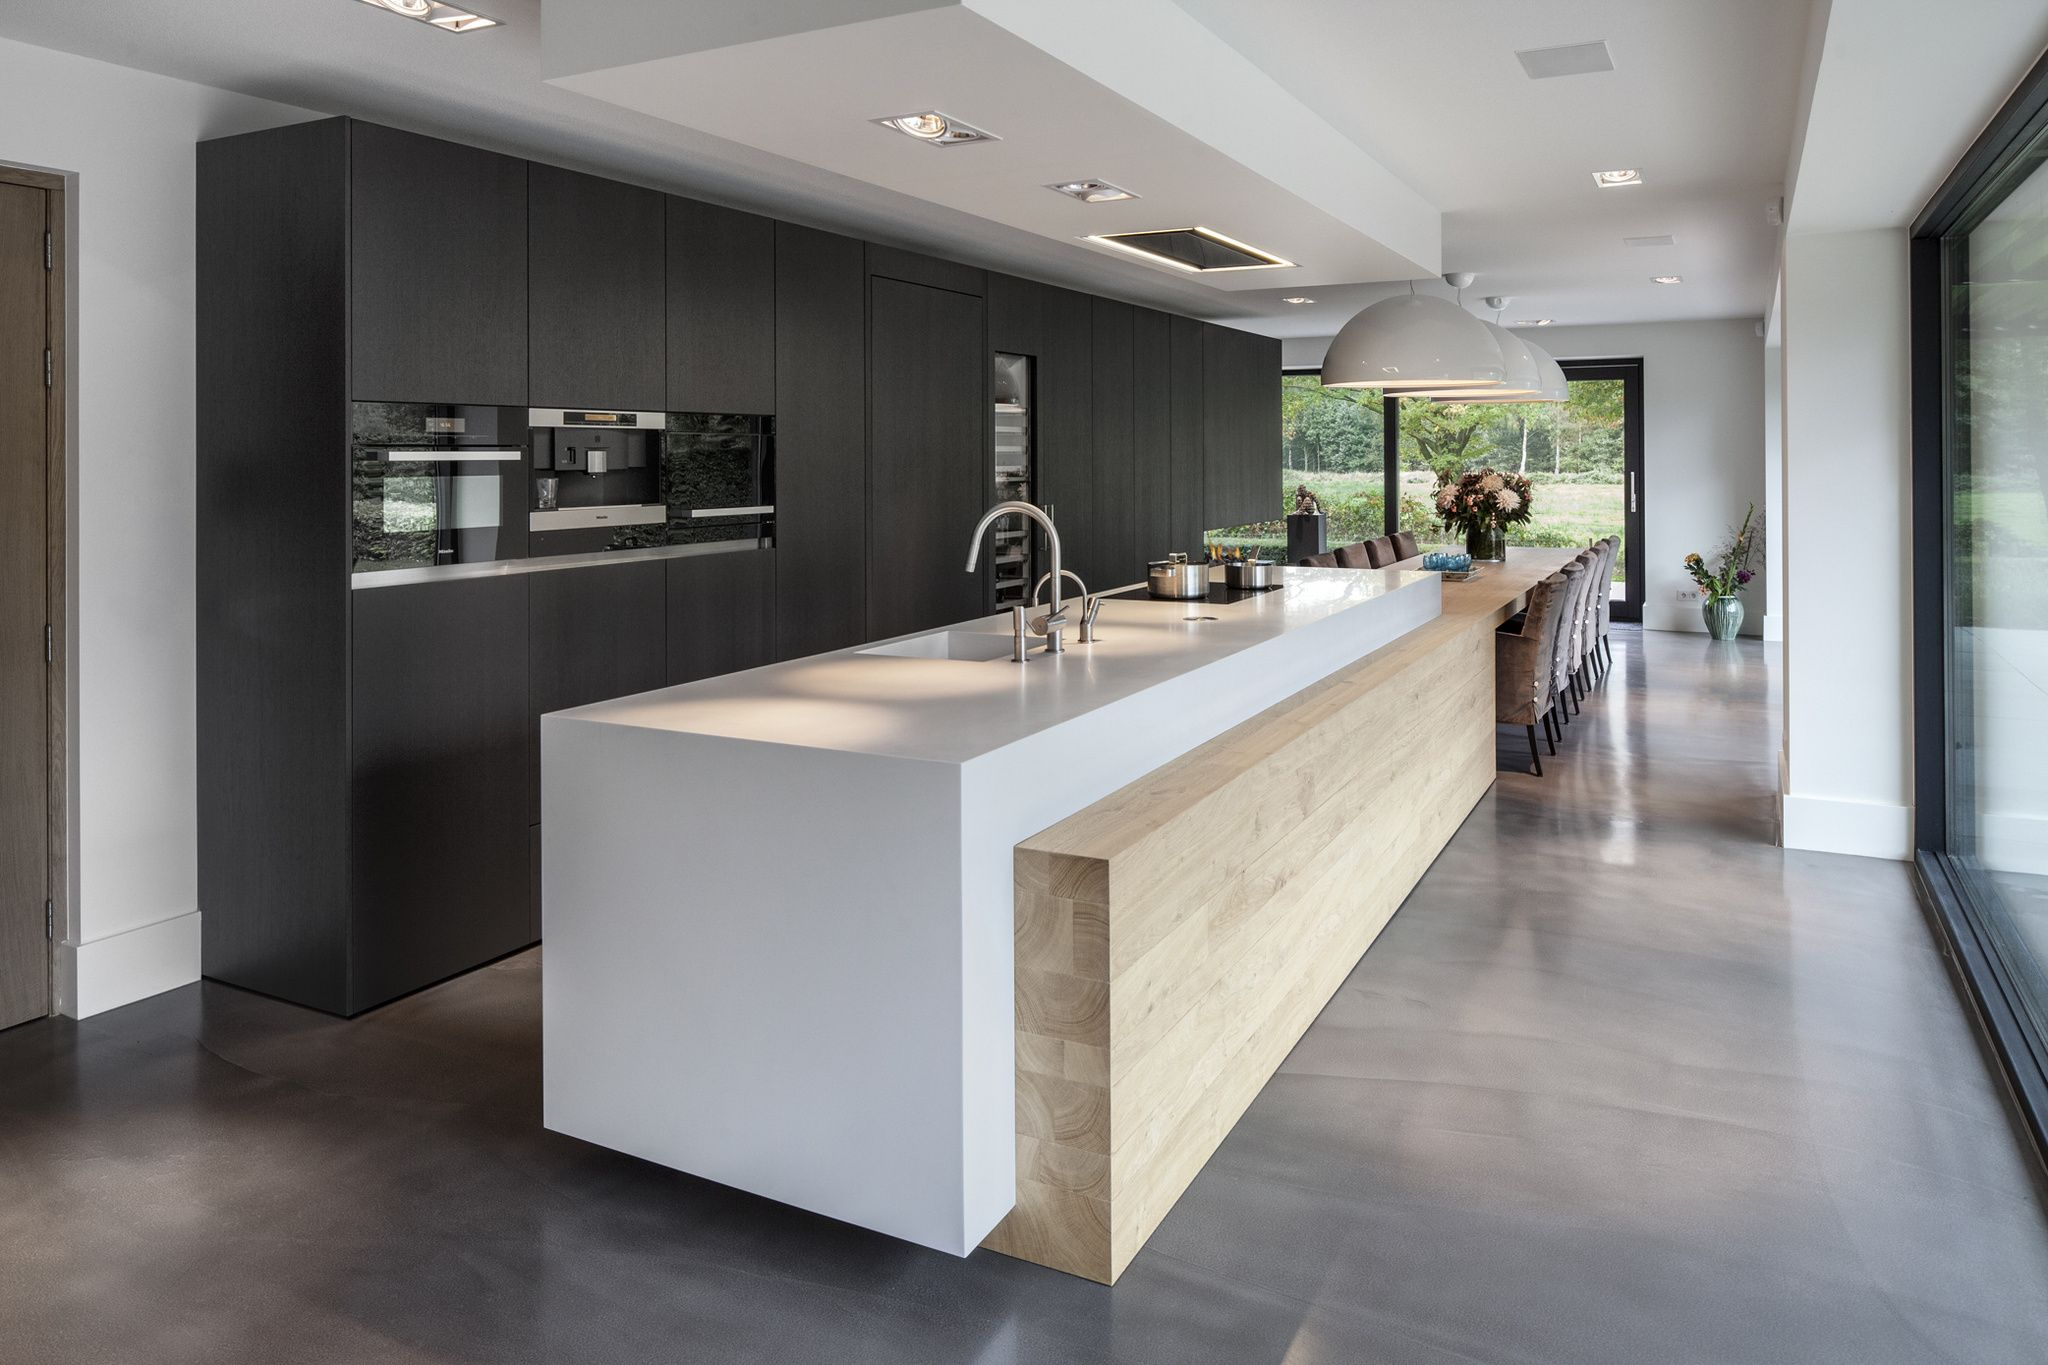 High End Kitchen Design Adorable Culimaat  High End Kitchens  Interiors  Italiaanse Keukens En Inspiration